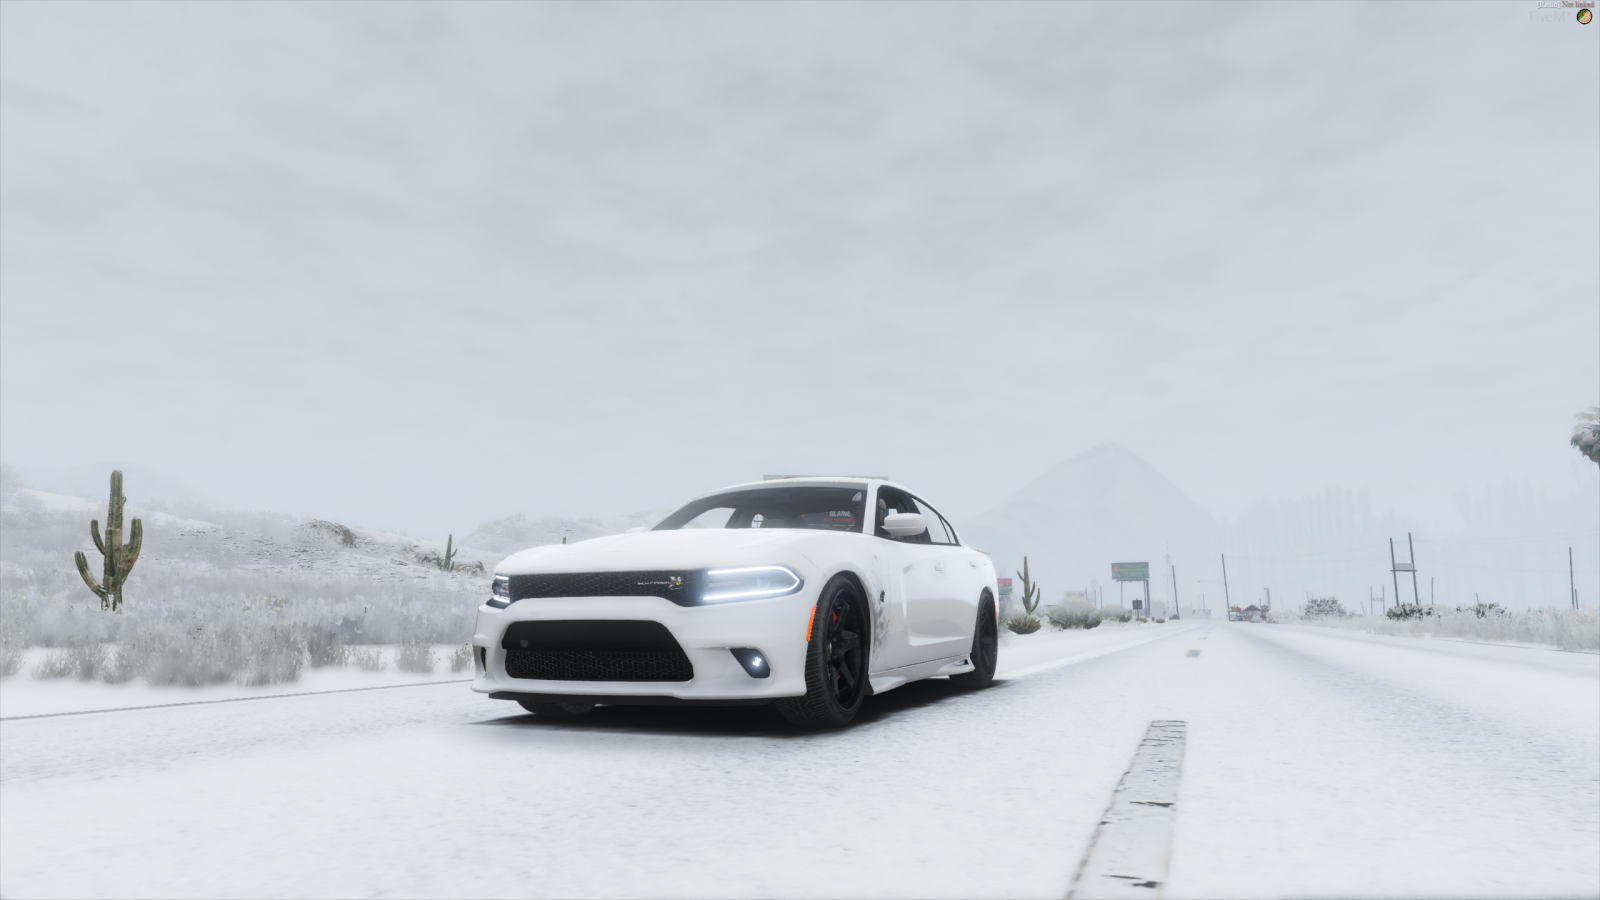 Storm's Charger